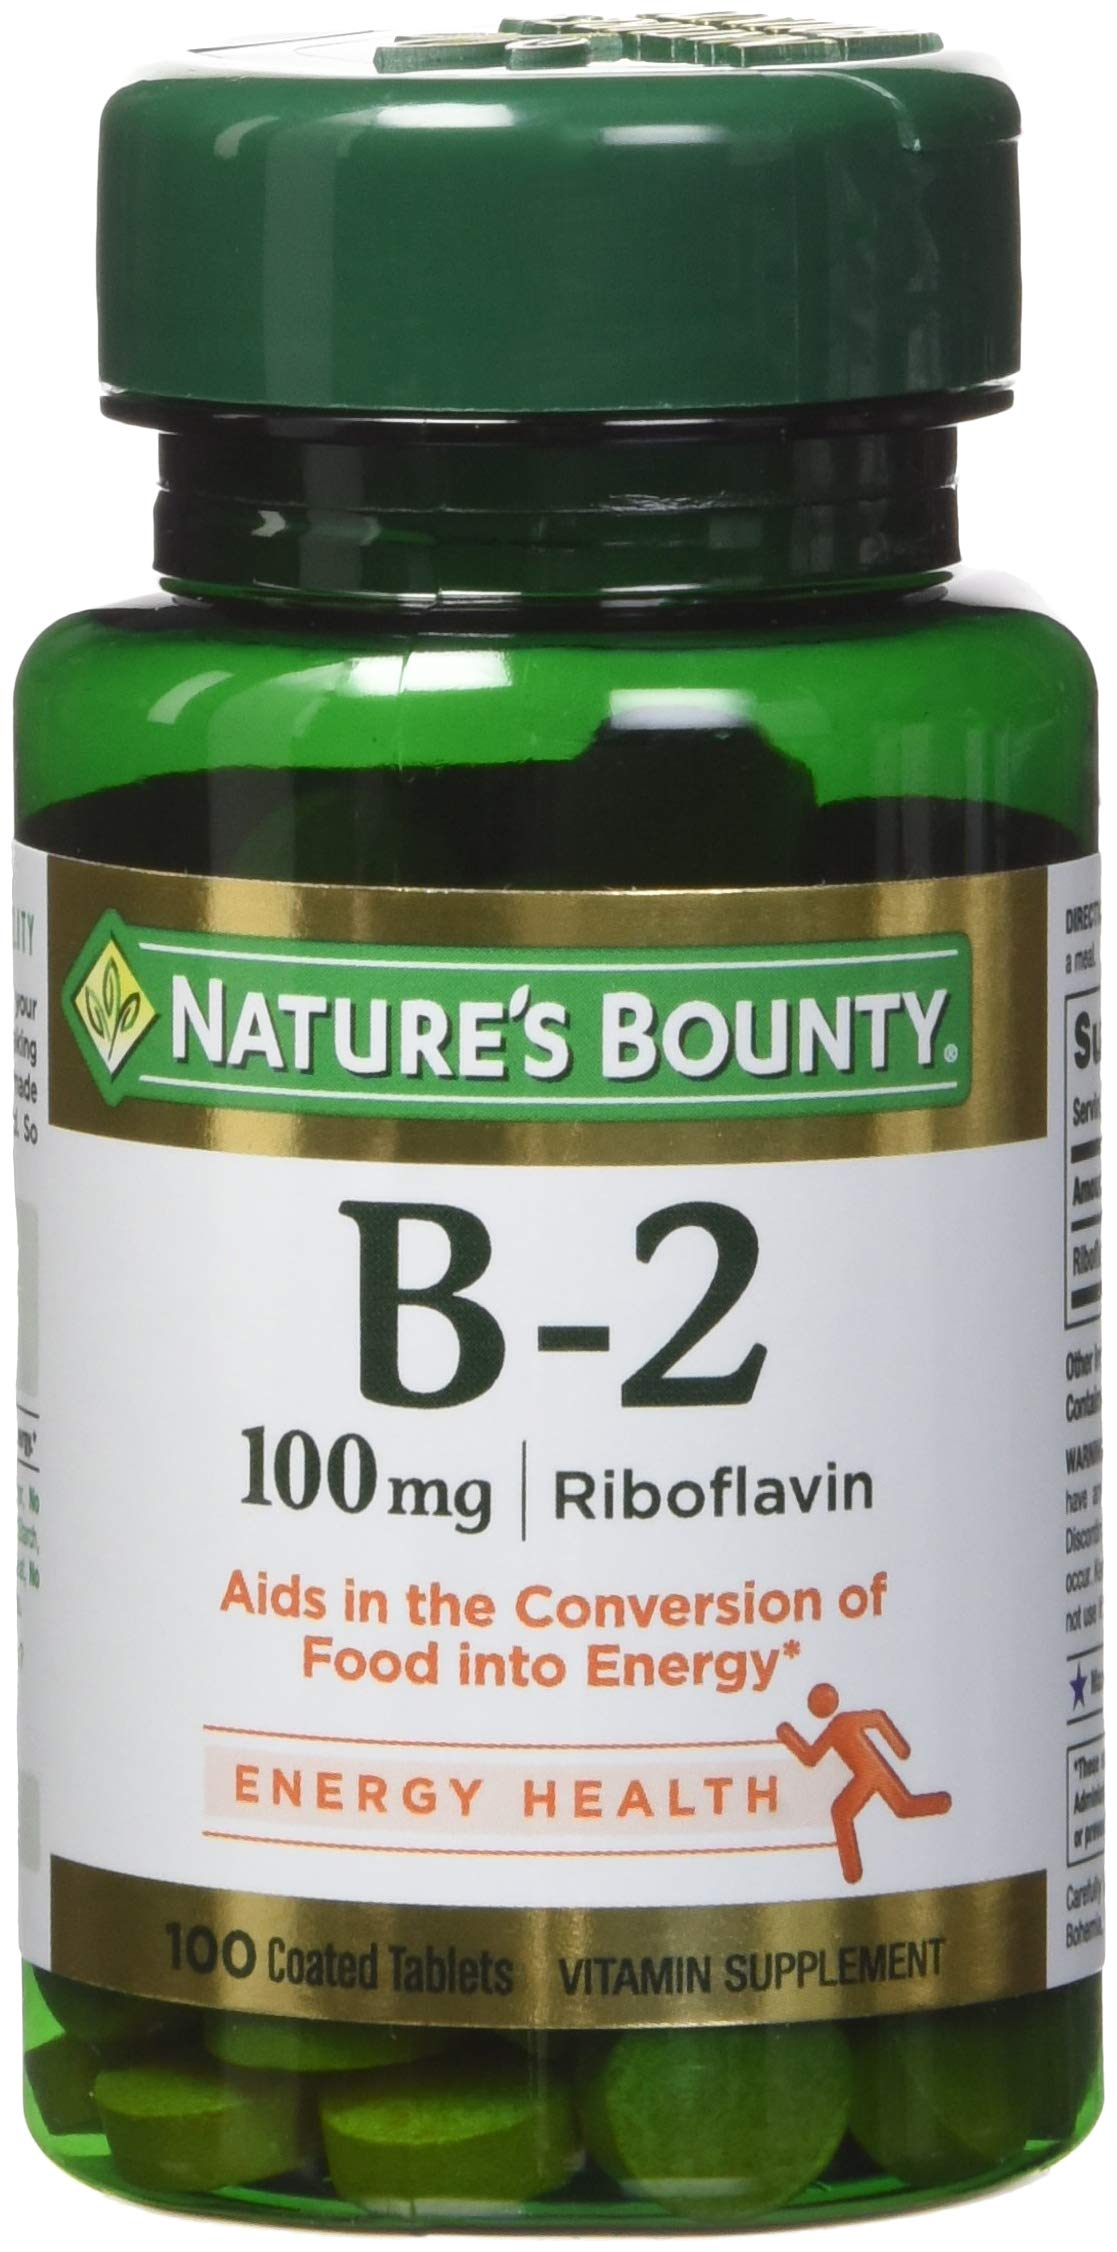 Nature's Bounty Vitamin B-2 100 mg, 100 Coated Tablets (Pack of 4) by Nature's Bounty